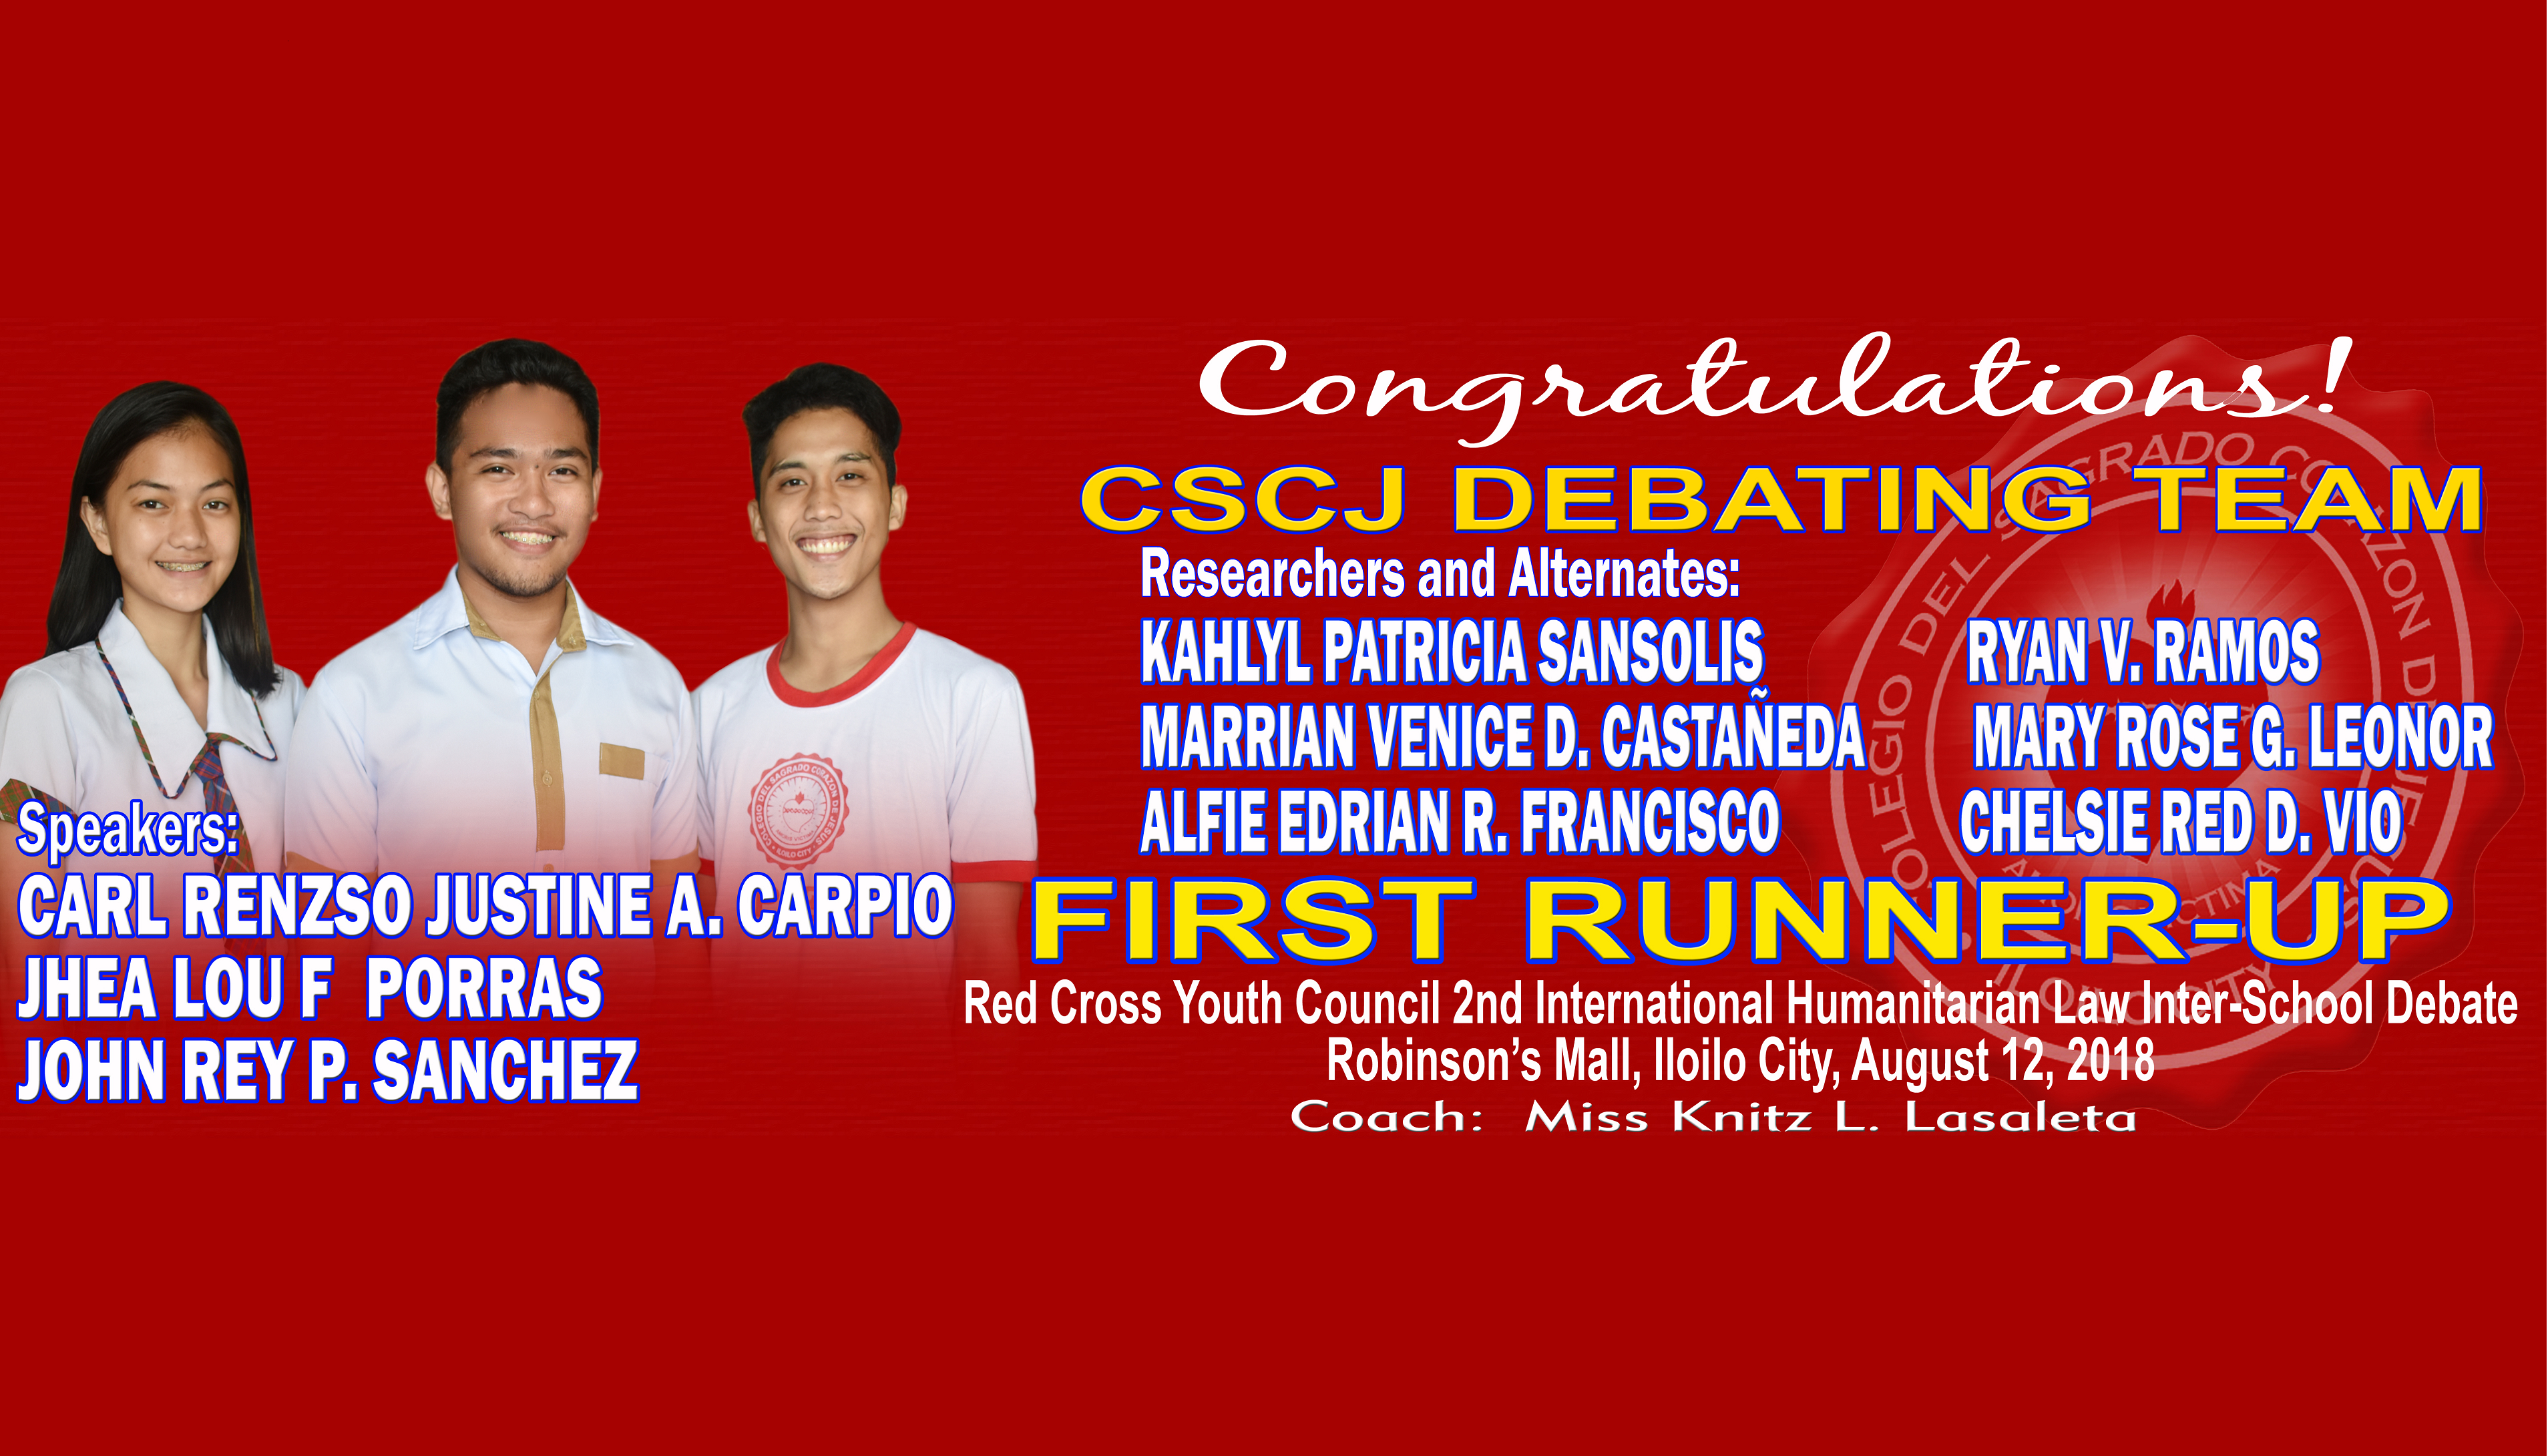 RED CROSS - FIRST RUNNER UP - 30X100 in copy